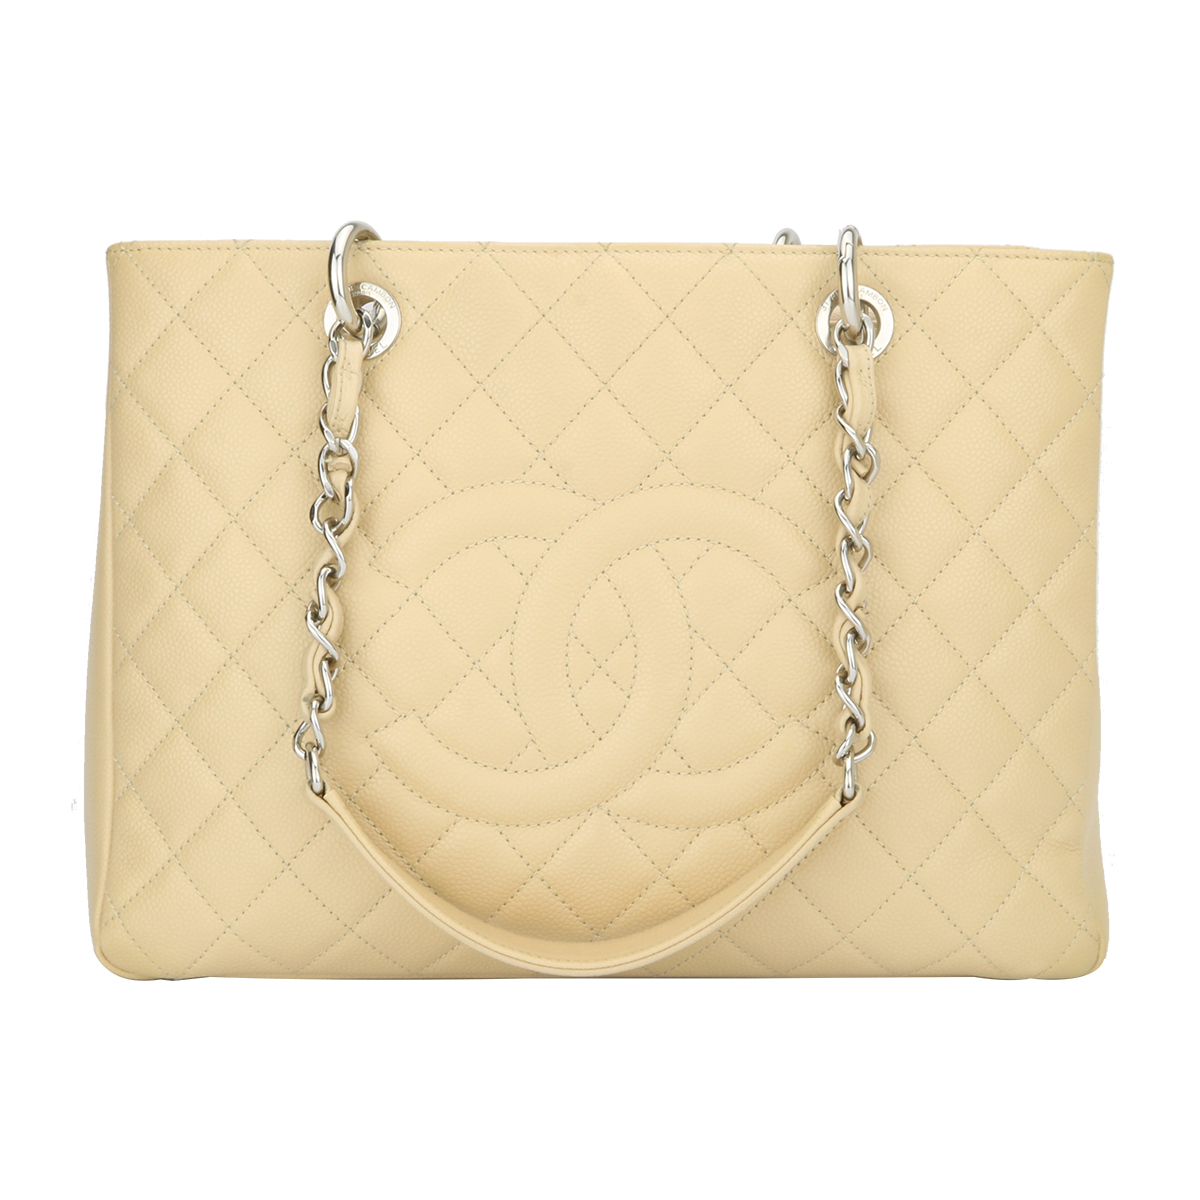 5e1a85bb1a00 Home Chanel CHANEL Grand Shopping Tote (GST) Beige Caviar Silver Hardware  2012.   